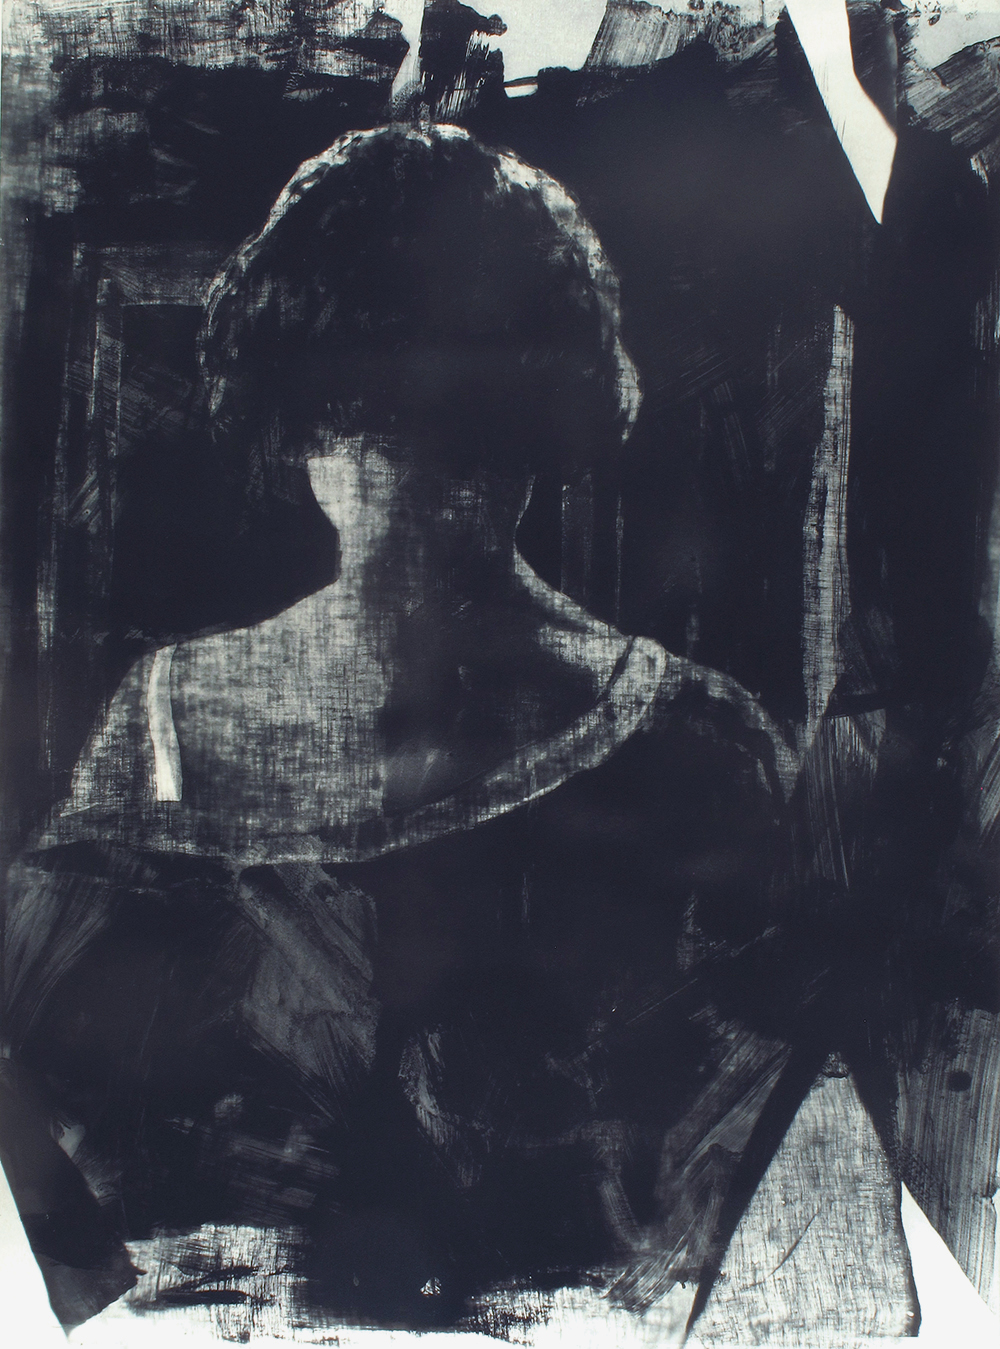 Matt Saunders, Ilsted (Annie) #1, 2015 (Photogravure, Edition of 12).